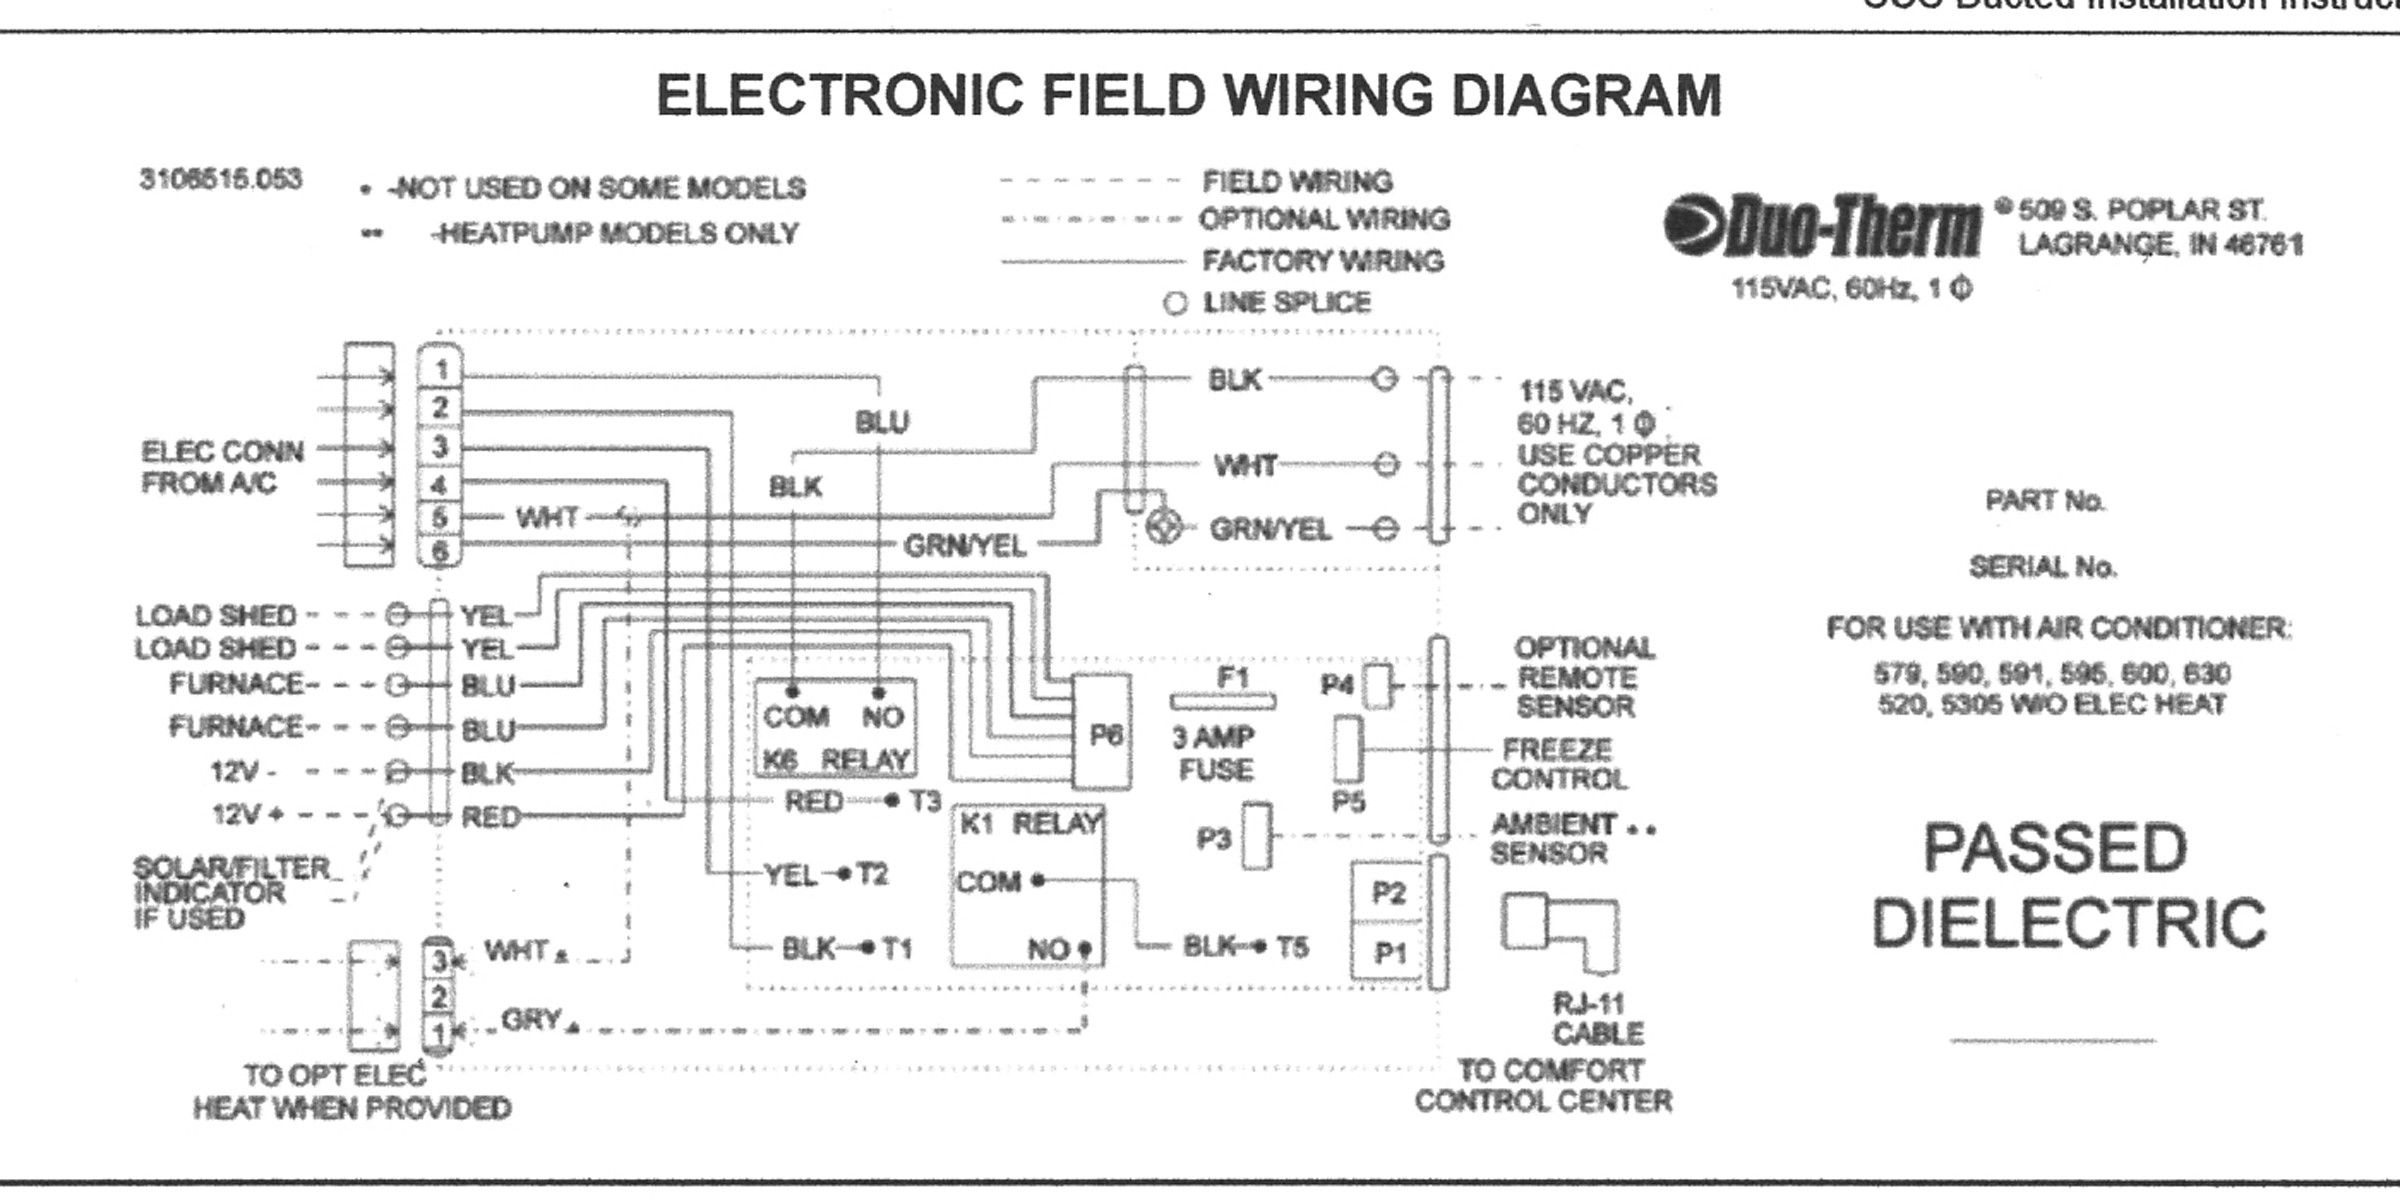 Coleman Ac Unit Wiring Diagram Wiring Diagram Image